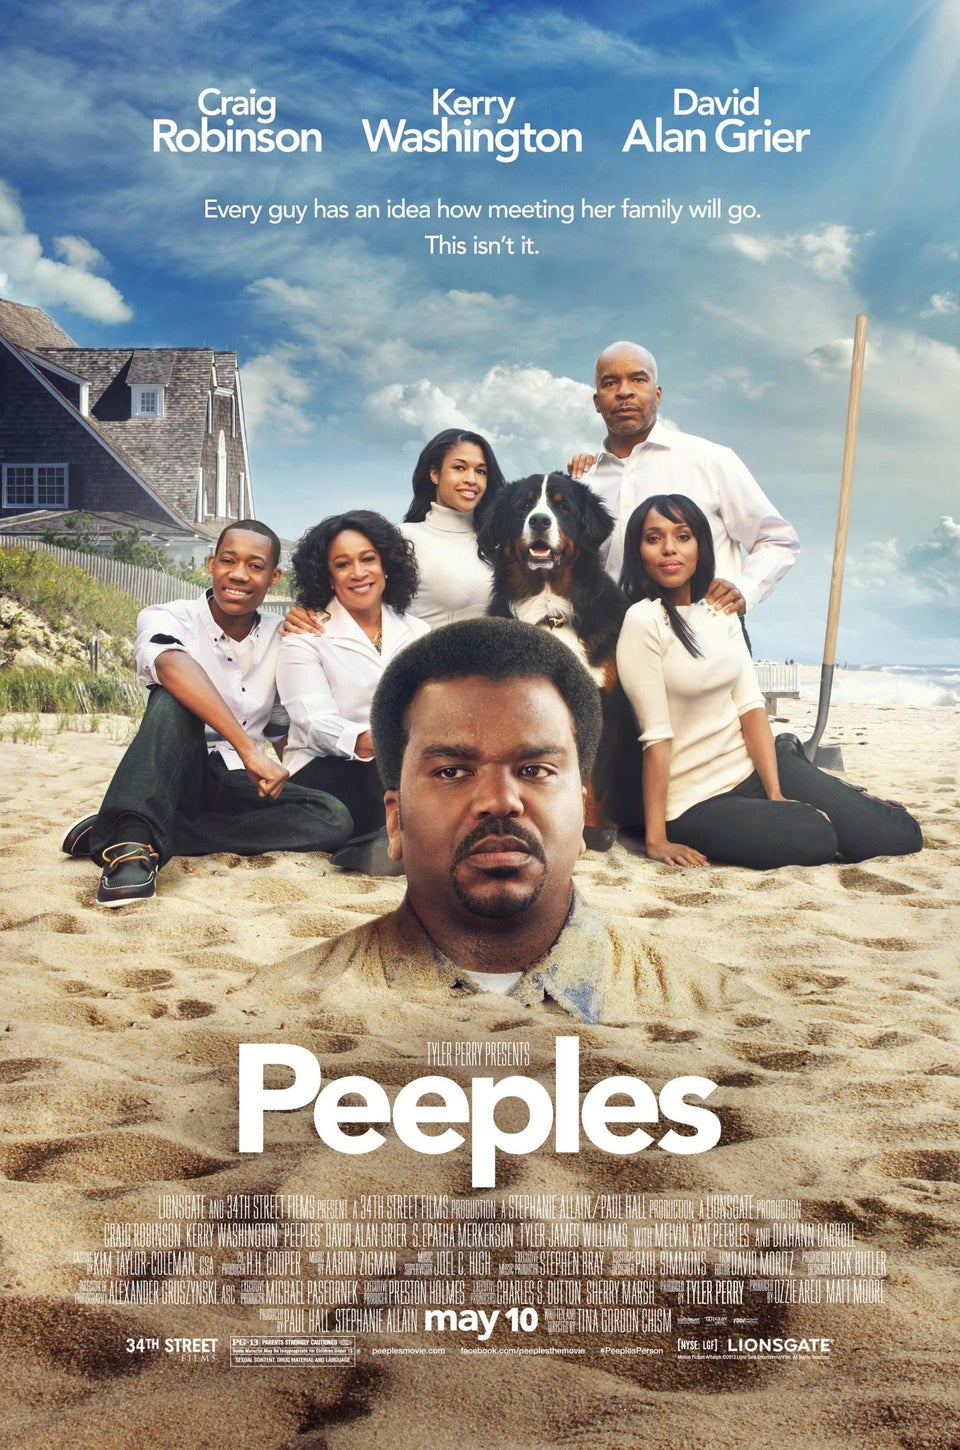 EXCLUSIVE: See the Official Poster for 'Peeples' Starring Kerry Washington